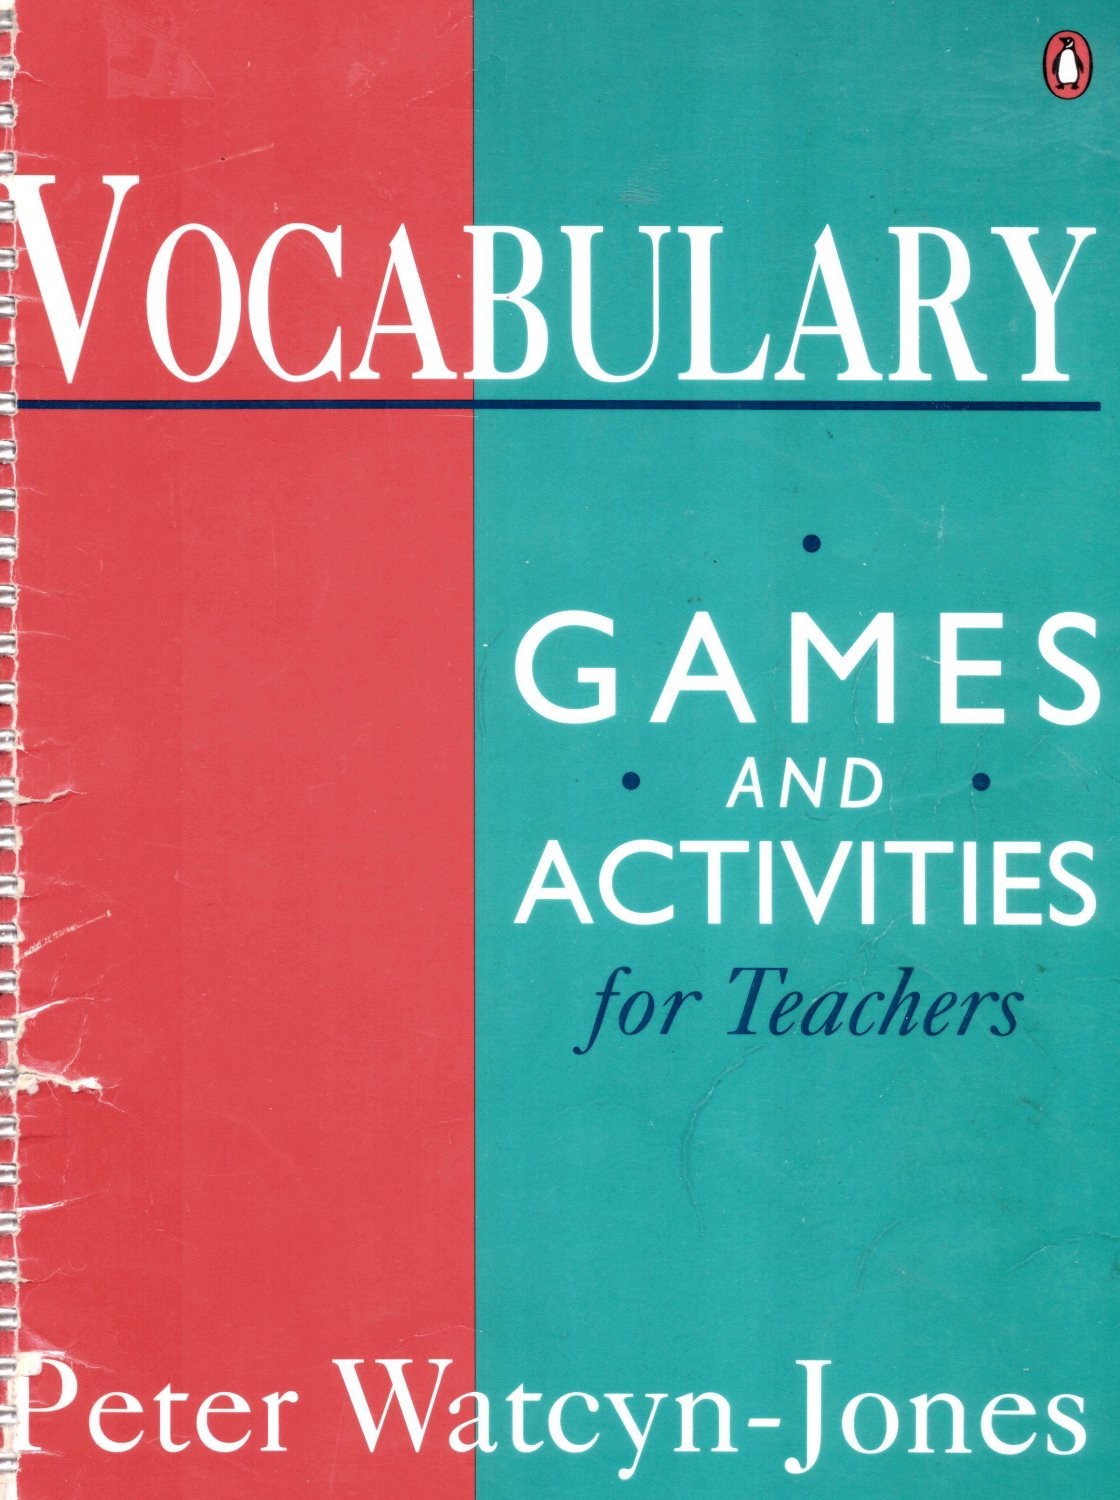 VOCABULARY GAMES AND ACTIVITIES FOR TEACHERS